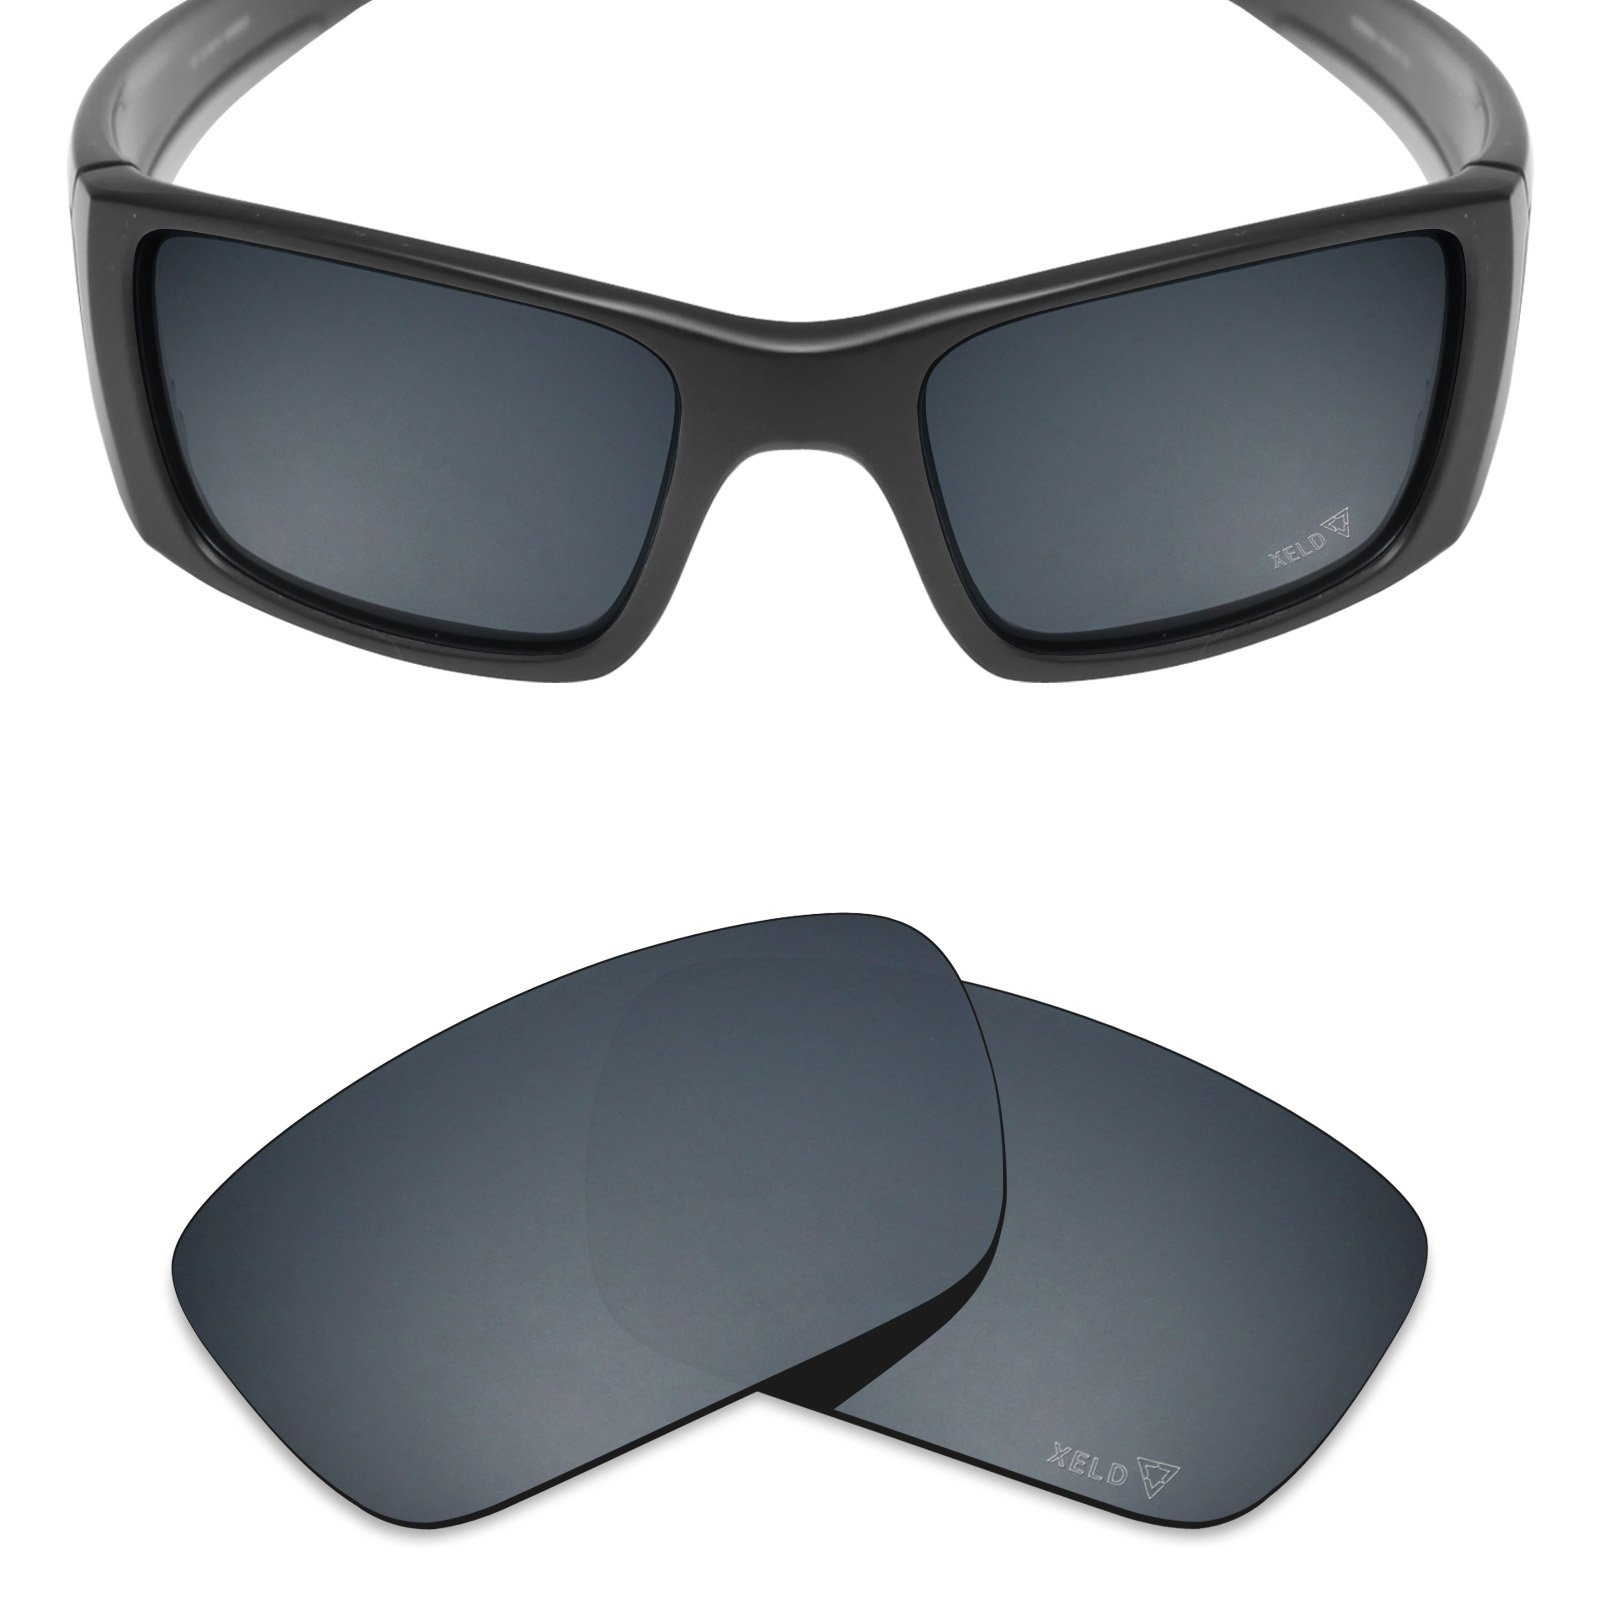 Mryok XELD Replacement Lenses for Oakley Fuel Cell - Spawn Black by Mryok